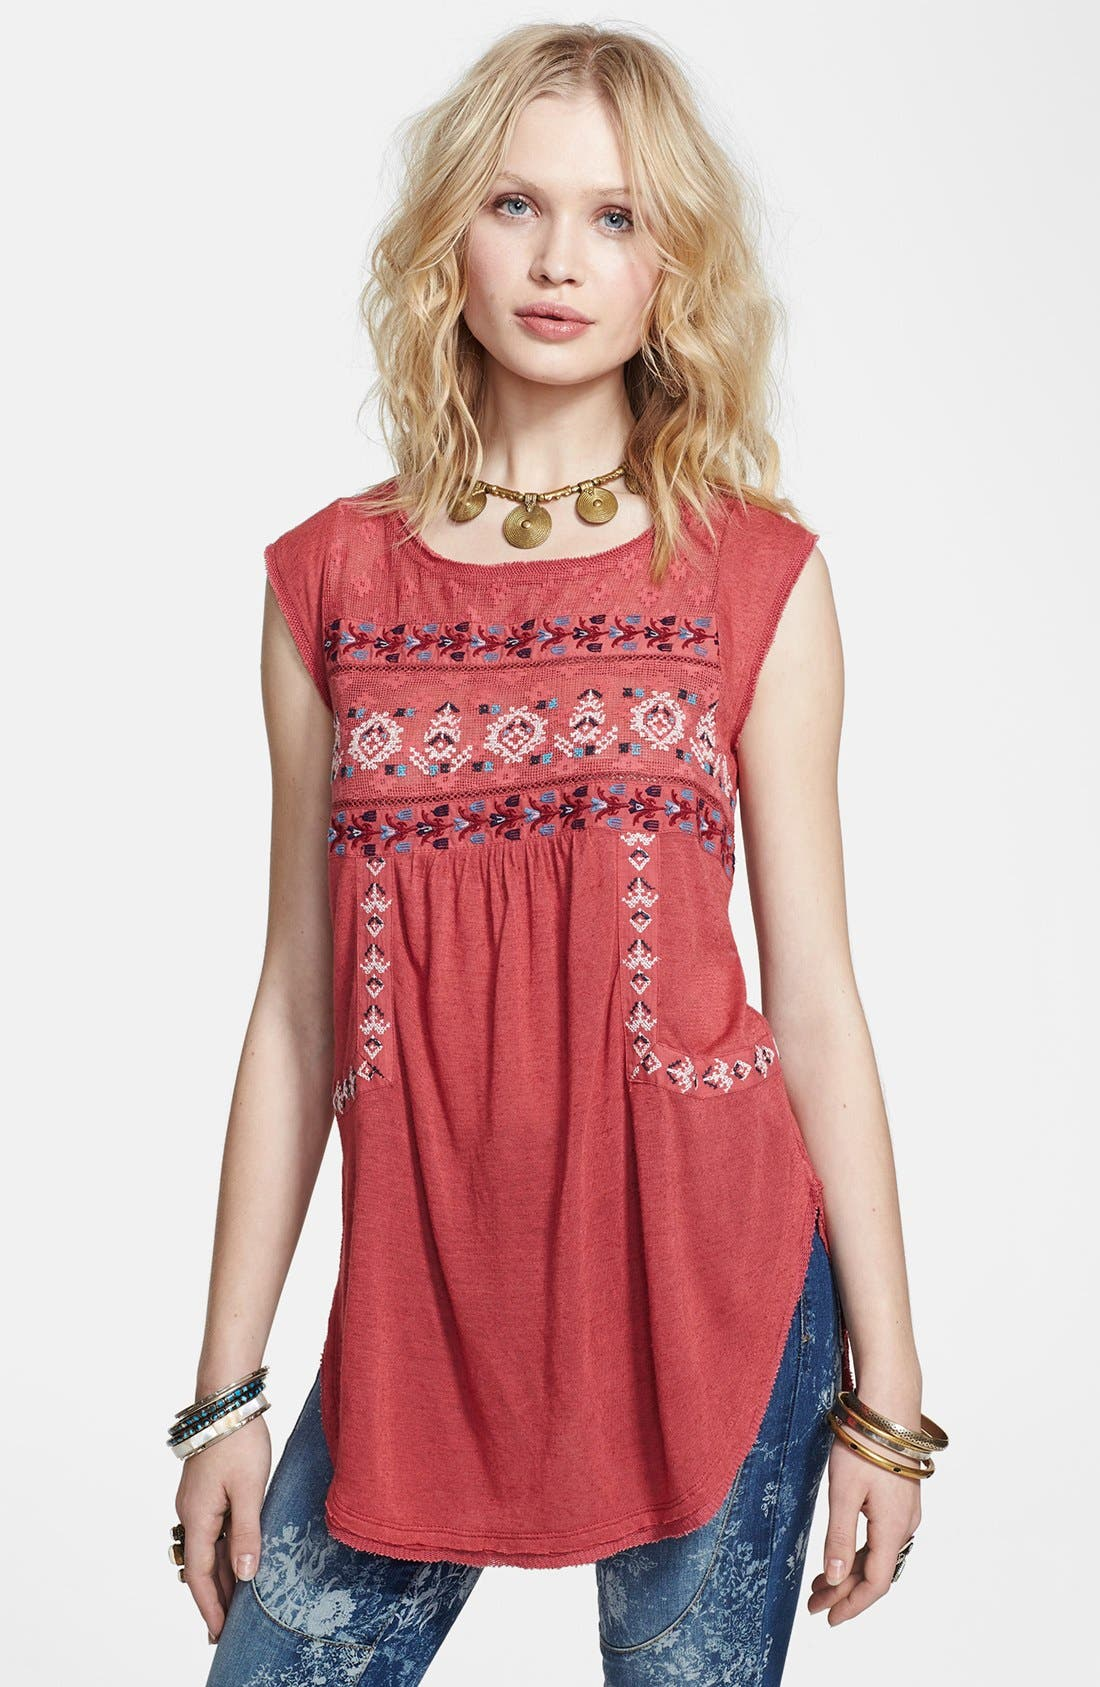 Main Image - Free People 'Reckless Abandon' Embroidered Tunic Top